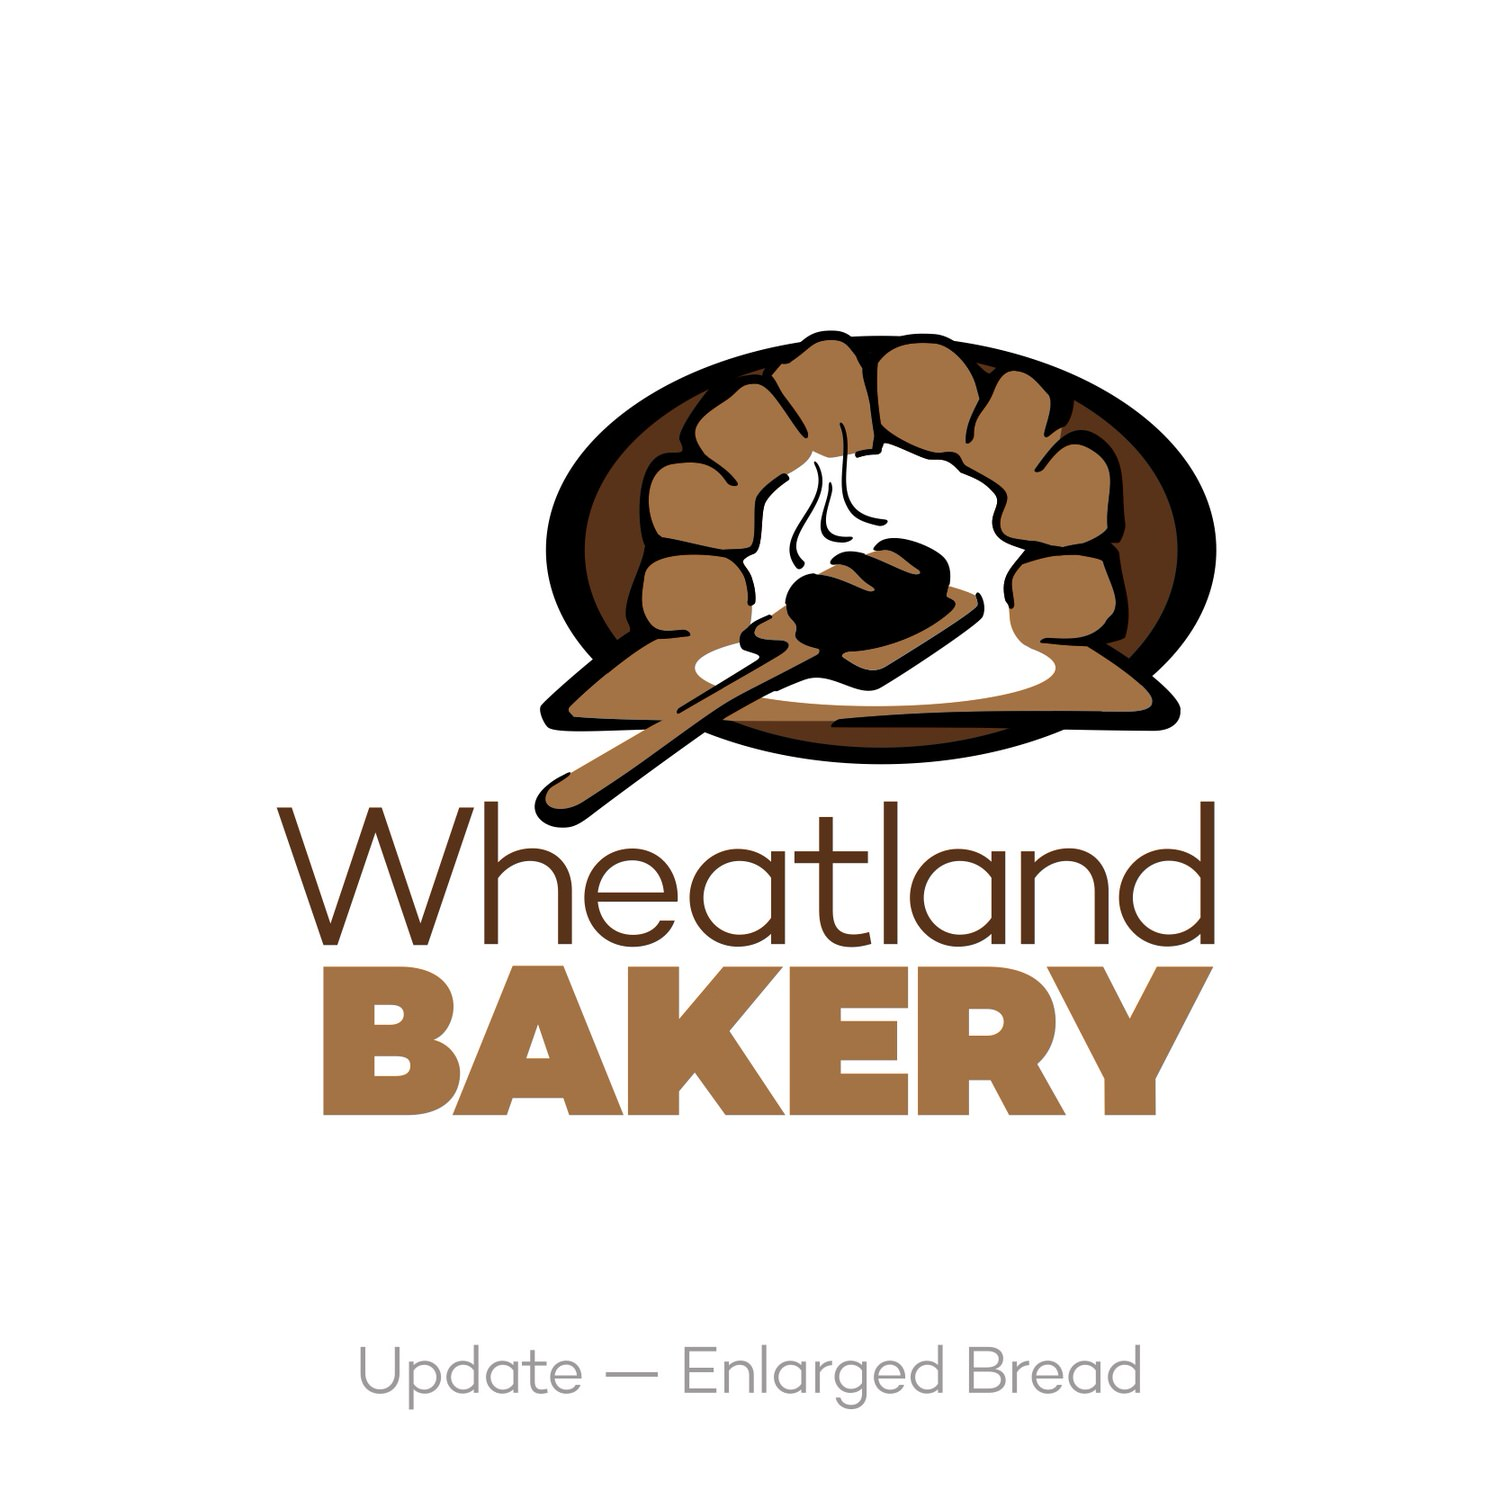 Wheatland-Logo-Options-03.jpg